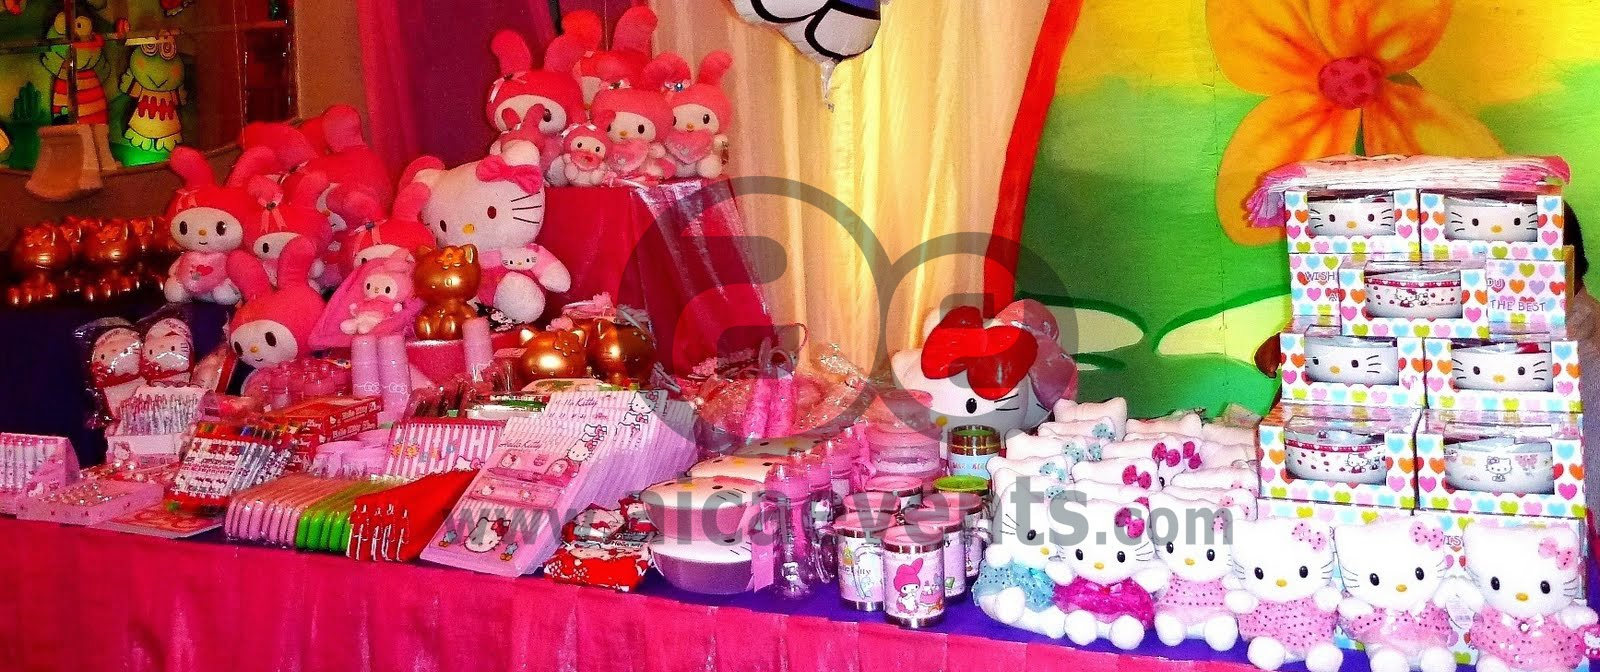 aicaevents: Hello Kitty Themed Birthday Party Decorations